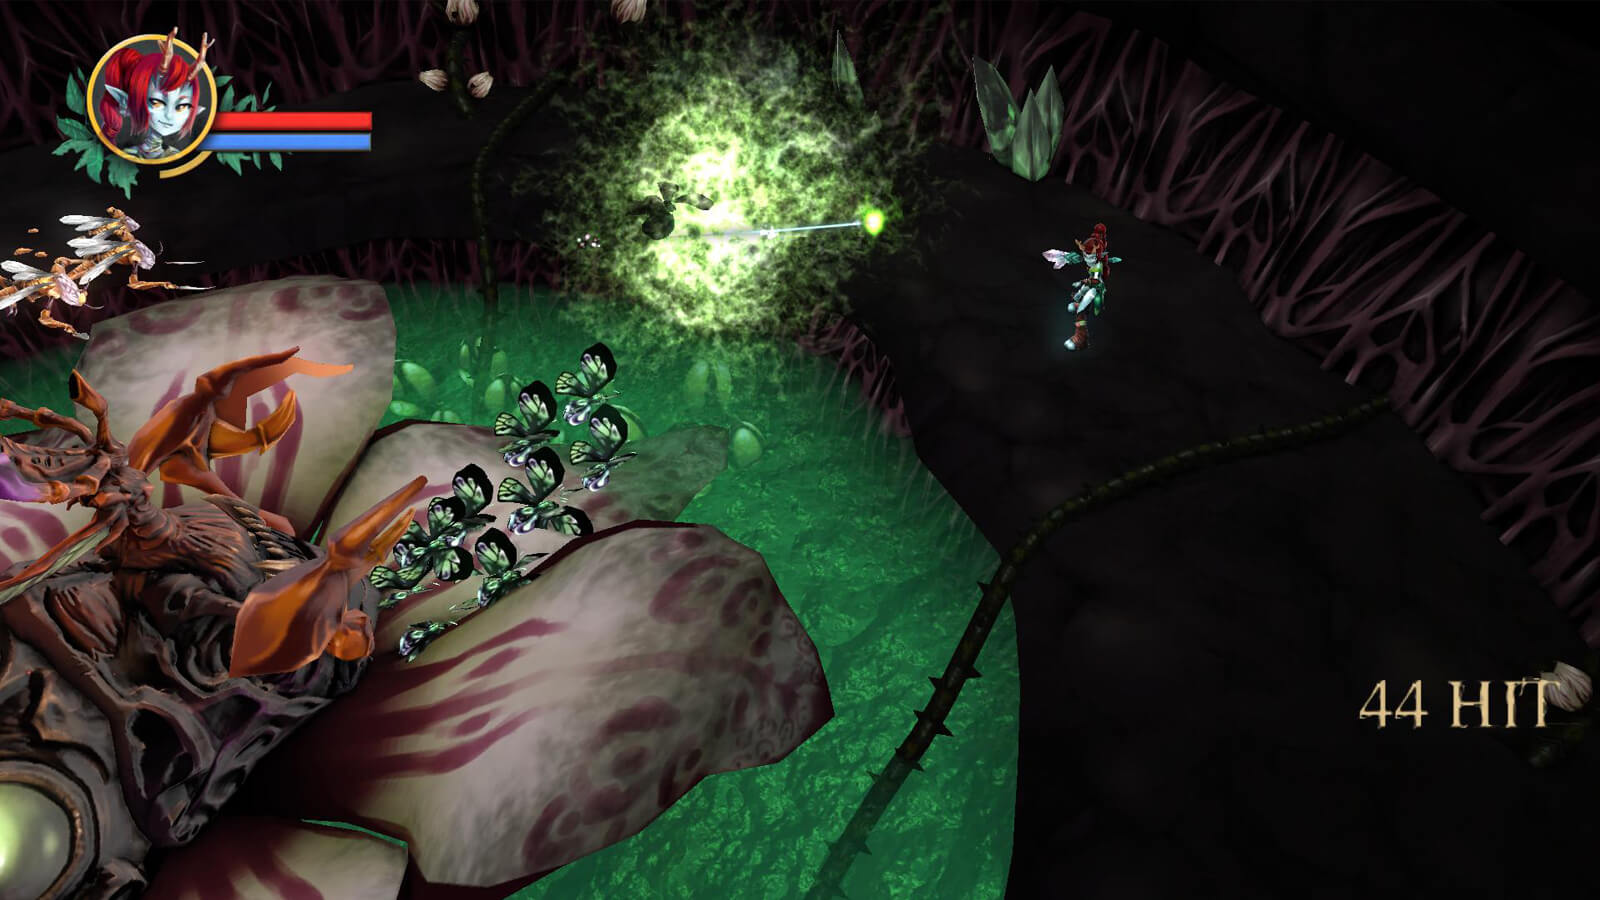 The player's character completes a 44-hit combo as butterflies and other enemies come toward her